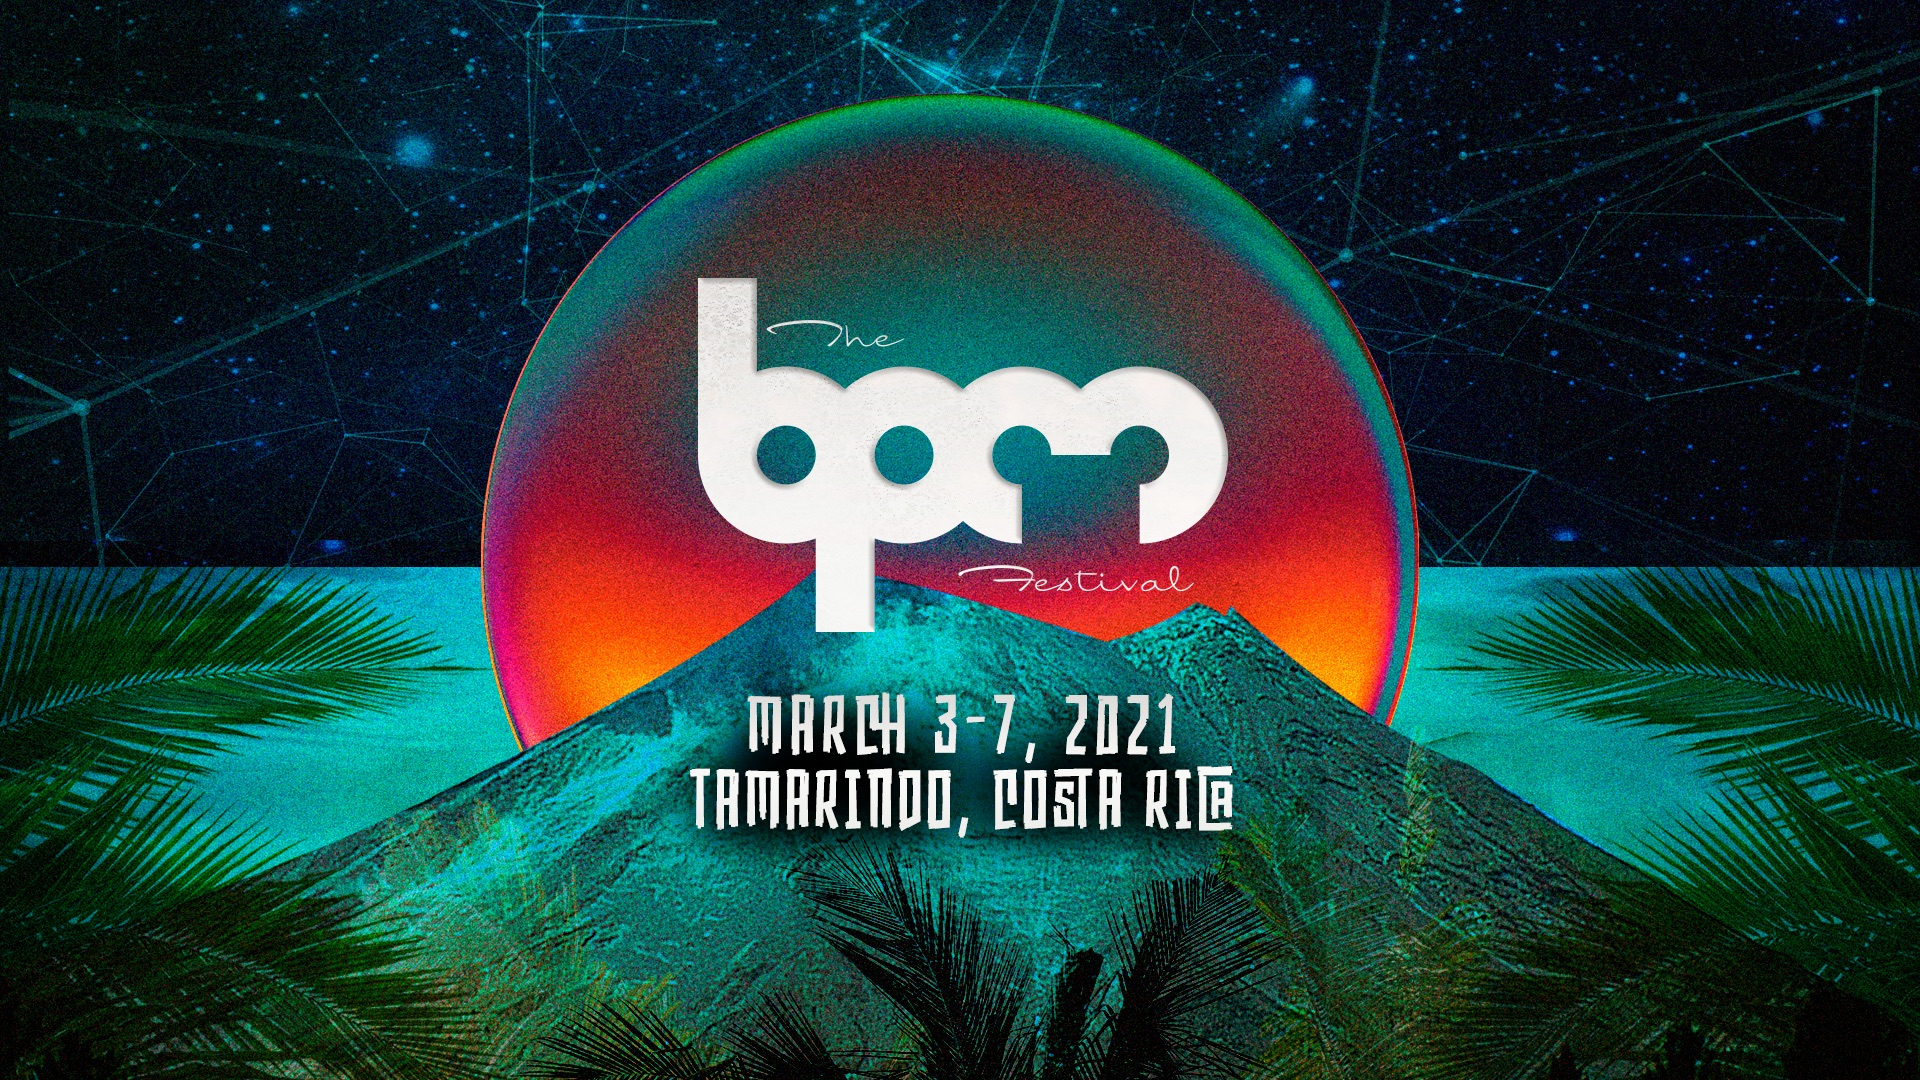 The Bpm Festival Costa Rica 2021 Dates 2020 Thank You Video The Bpm Festival Dear winter by ajr is in the key of f. the bpm festival costa rica 2021 dates